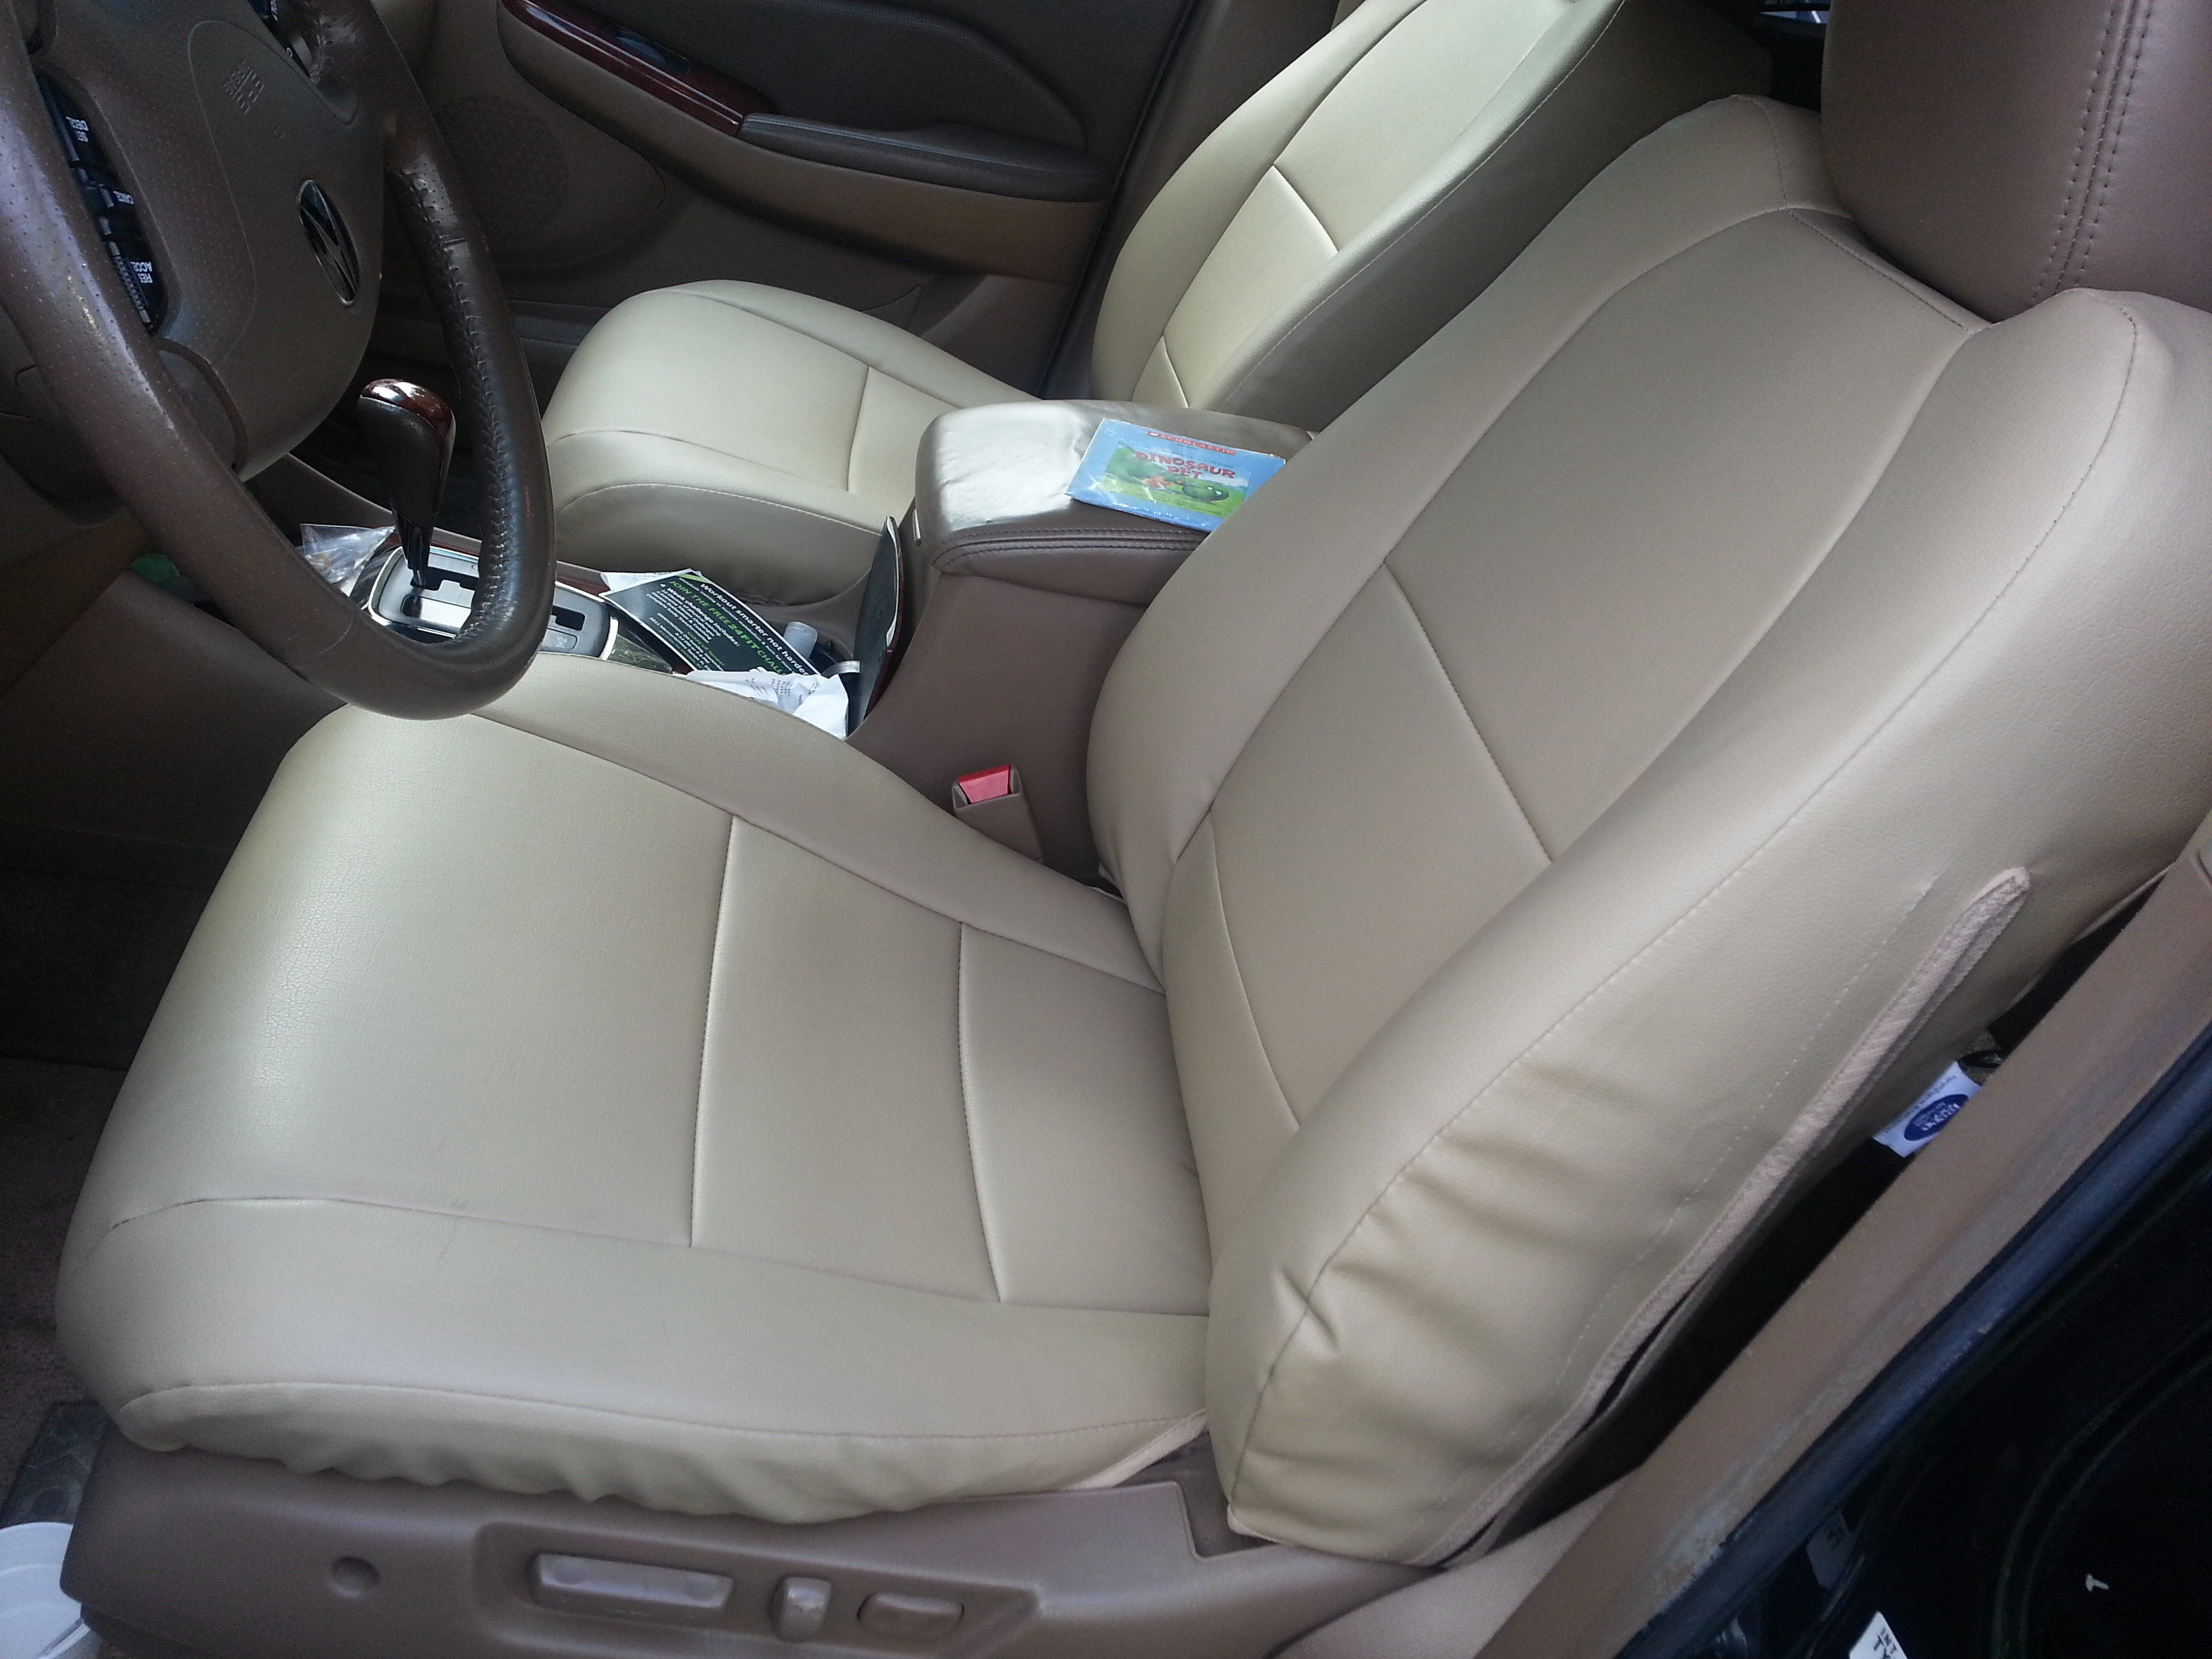 2004 MDX Seat Covers